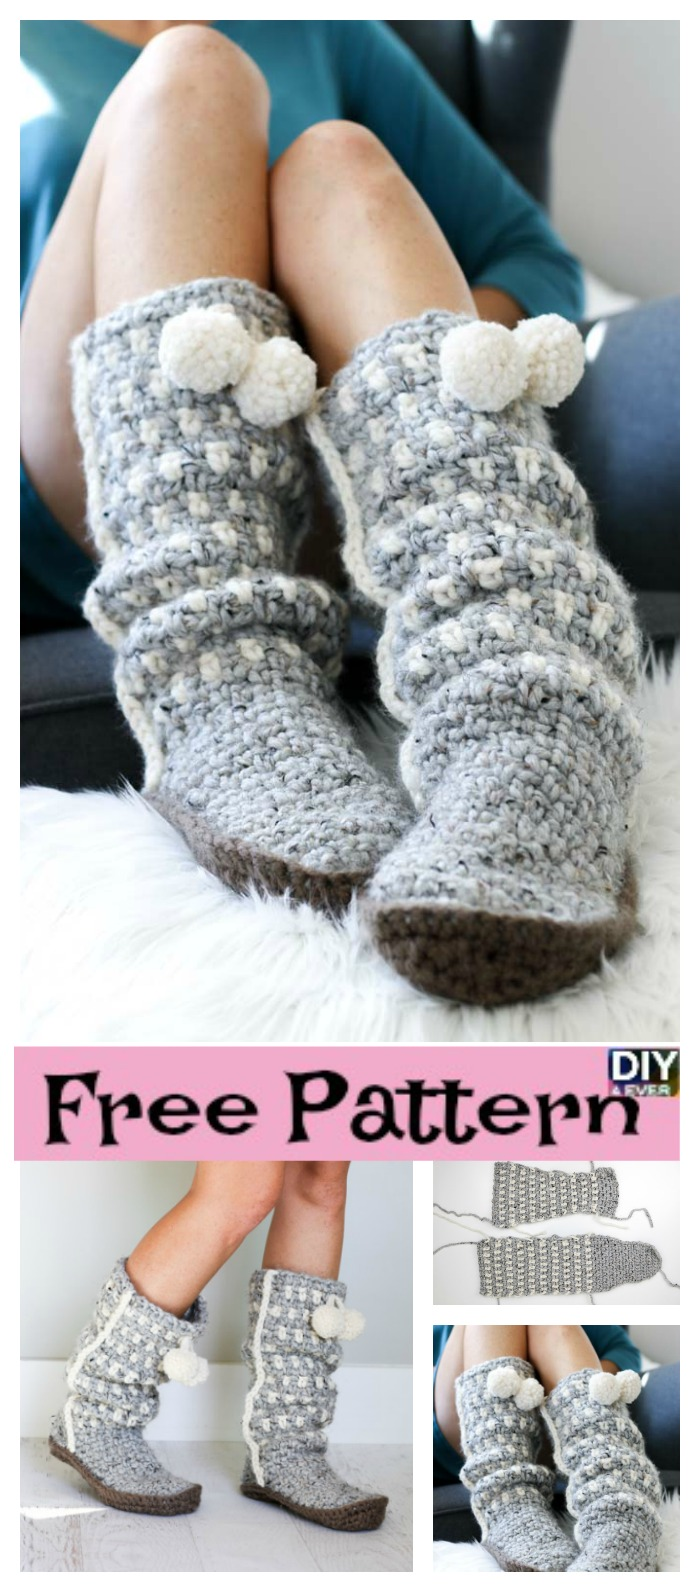 diy4ever- Easy Stylish Crochet Slippers – Free Pattern